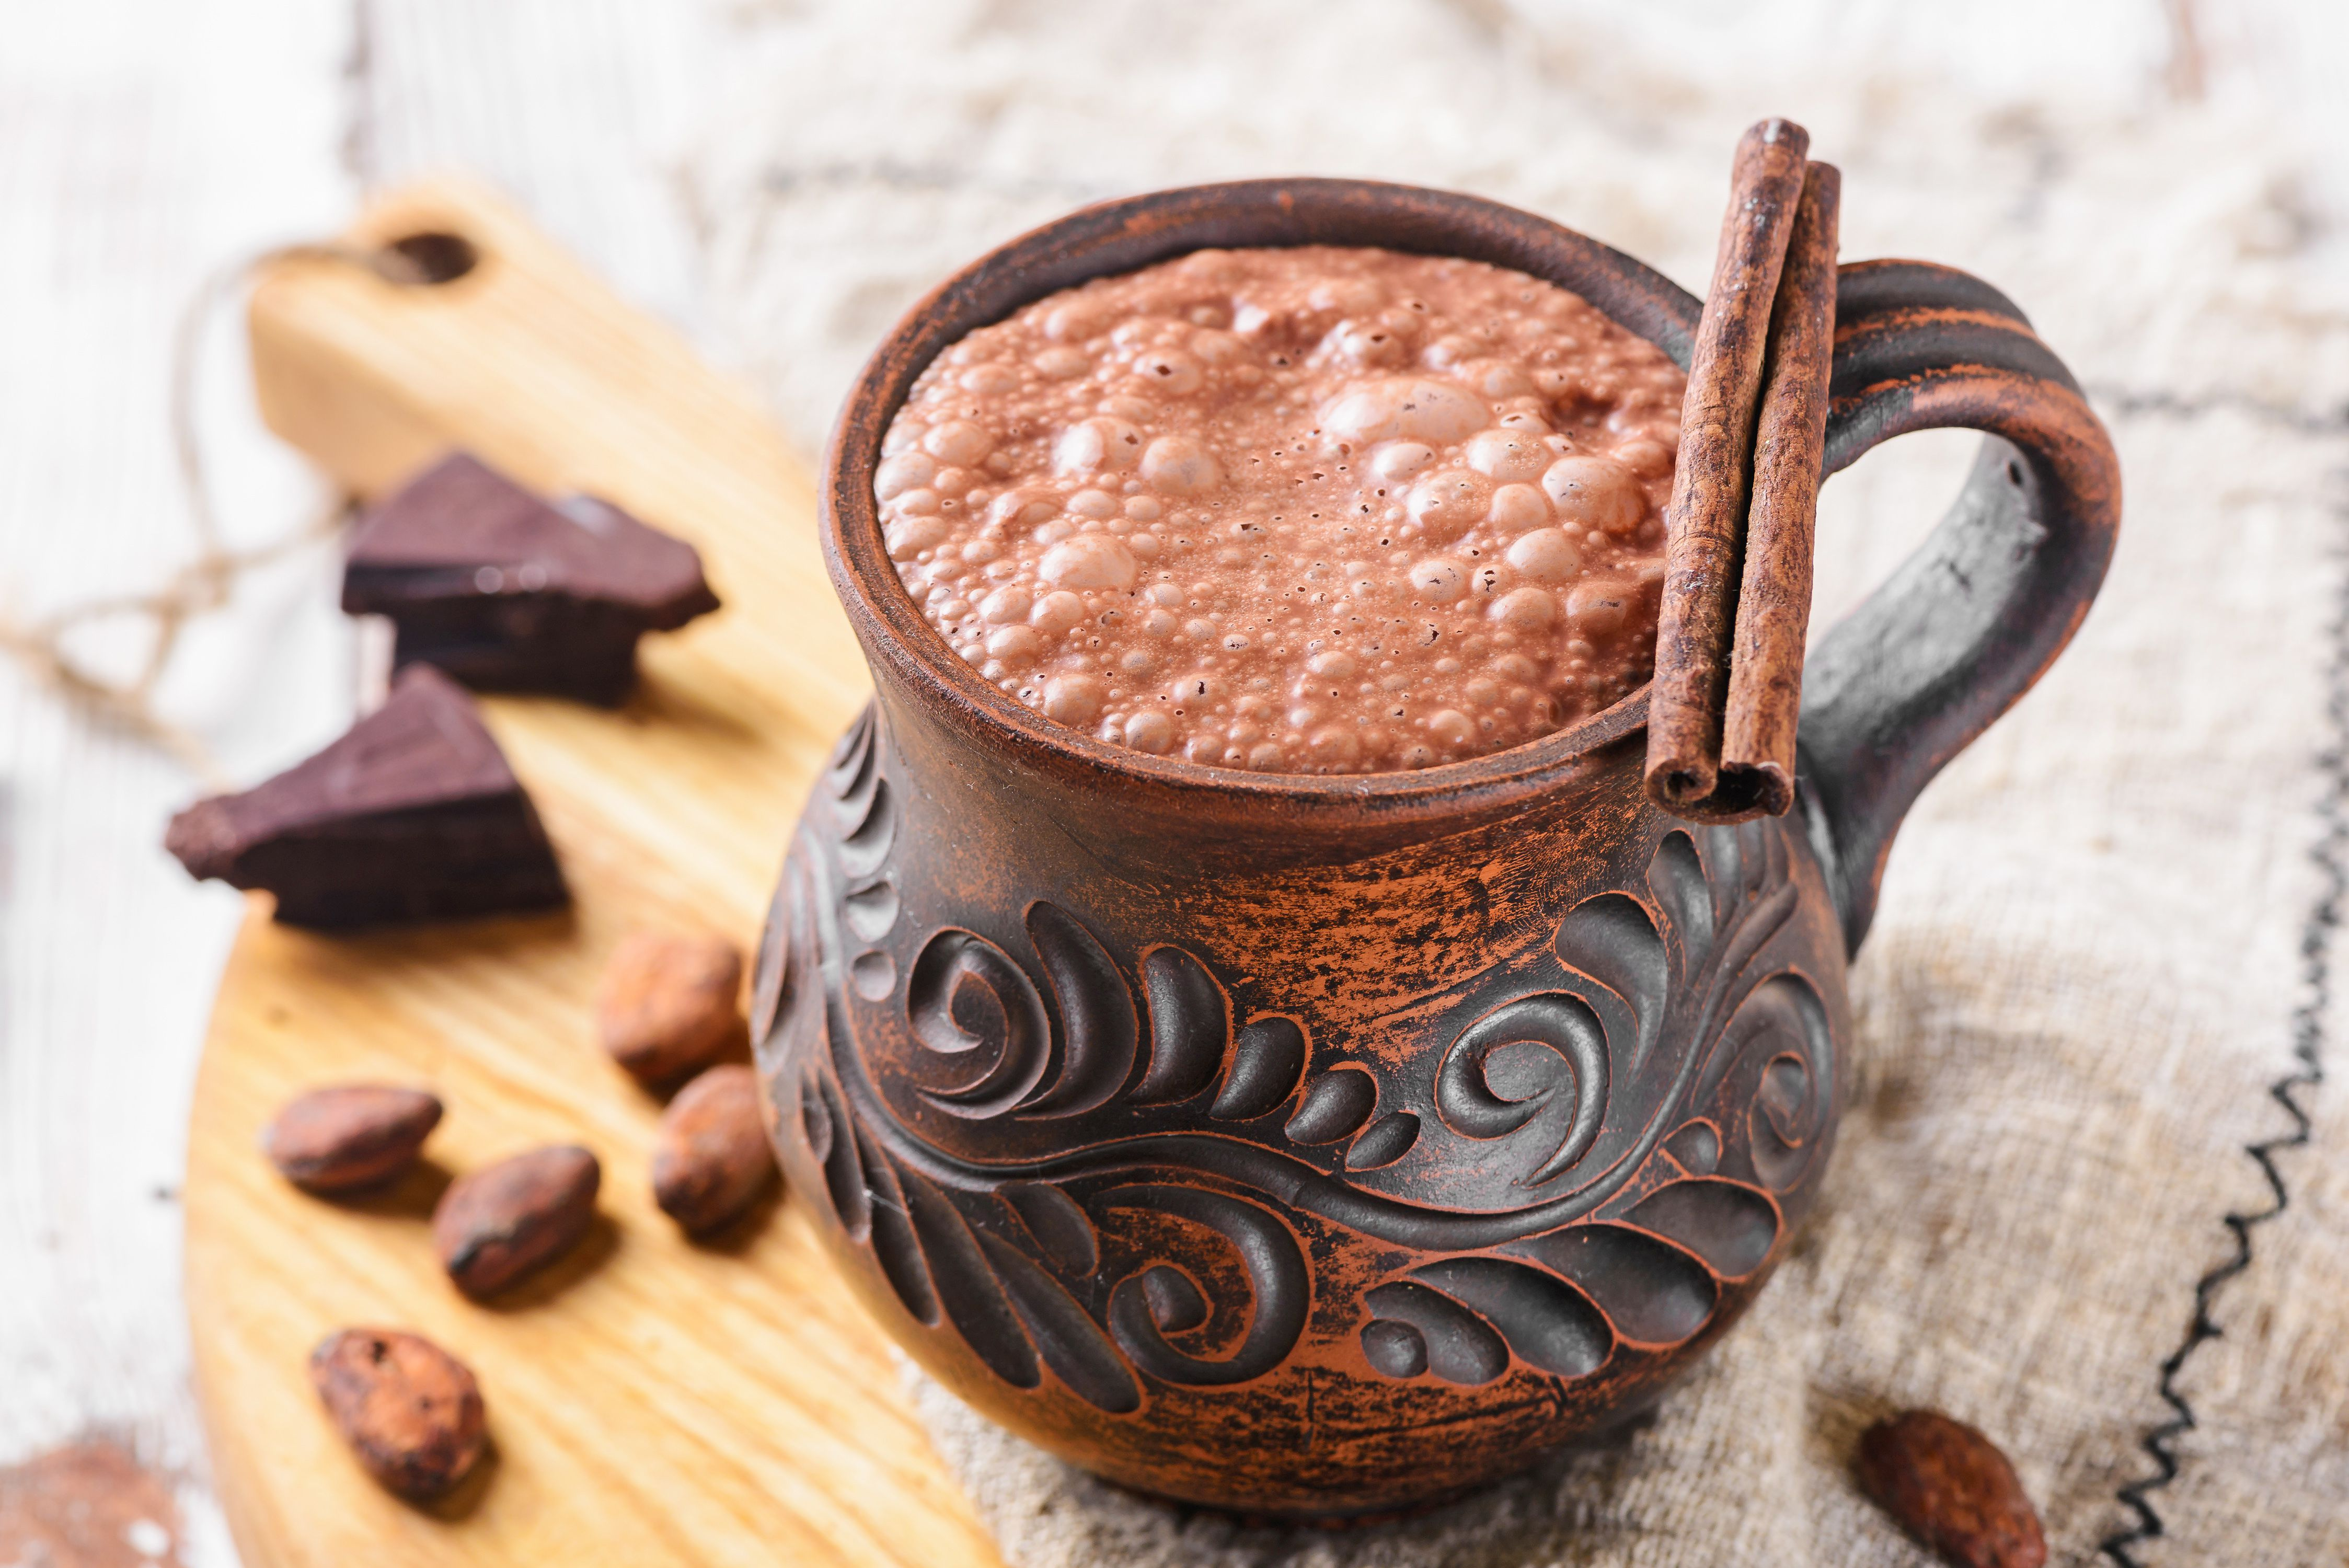 How to Make Chocolate Caliente—Authentic Mexican Hot Chocolate